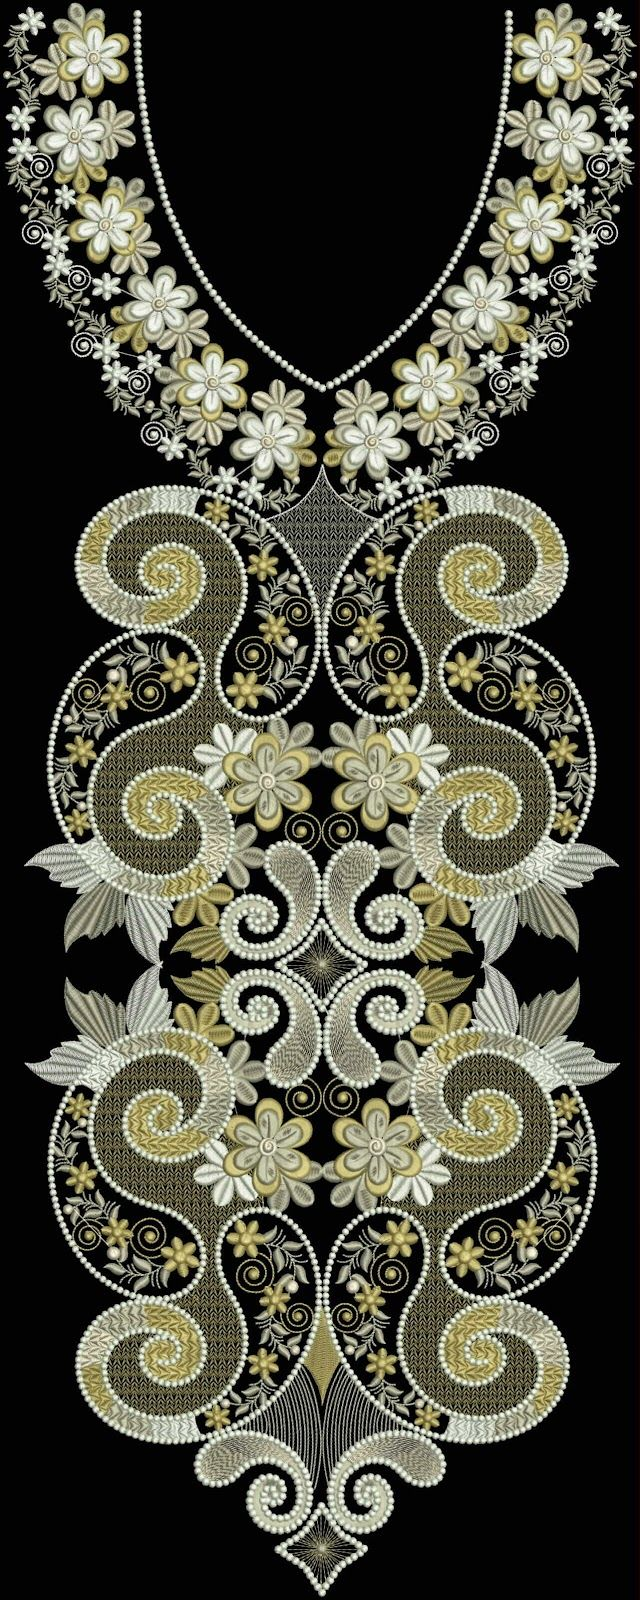 Embroidery Designs: FREE DOWNLOAD http://embroiderydesignsstudio.blogspot.com/